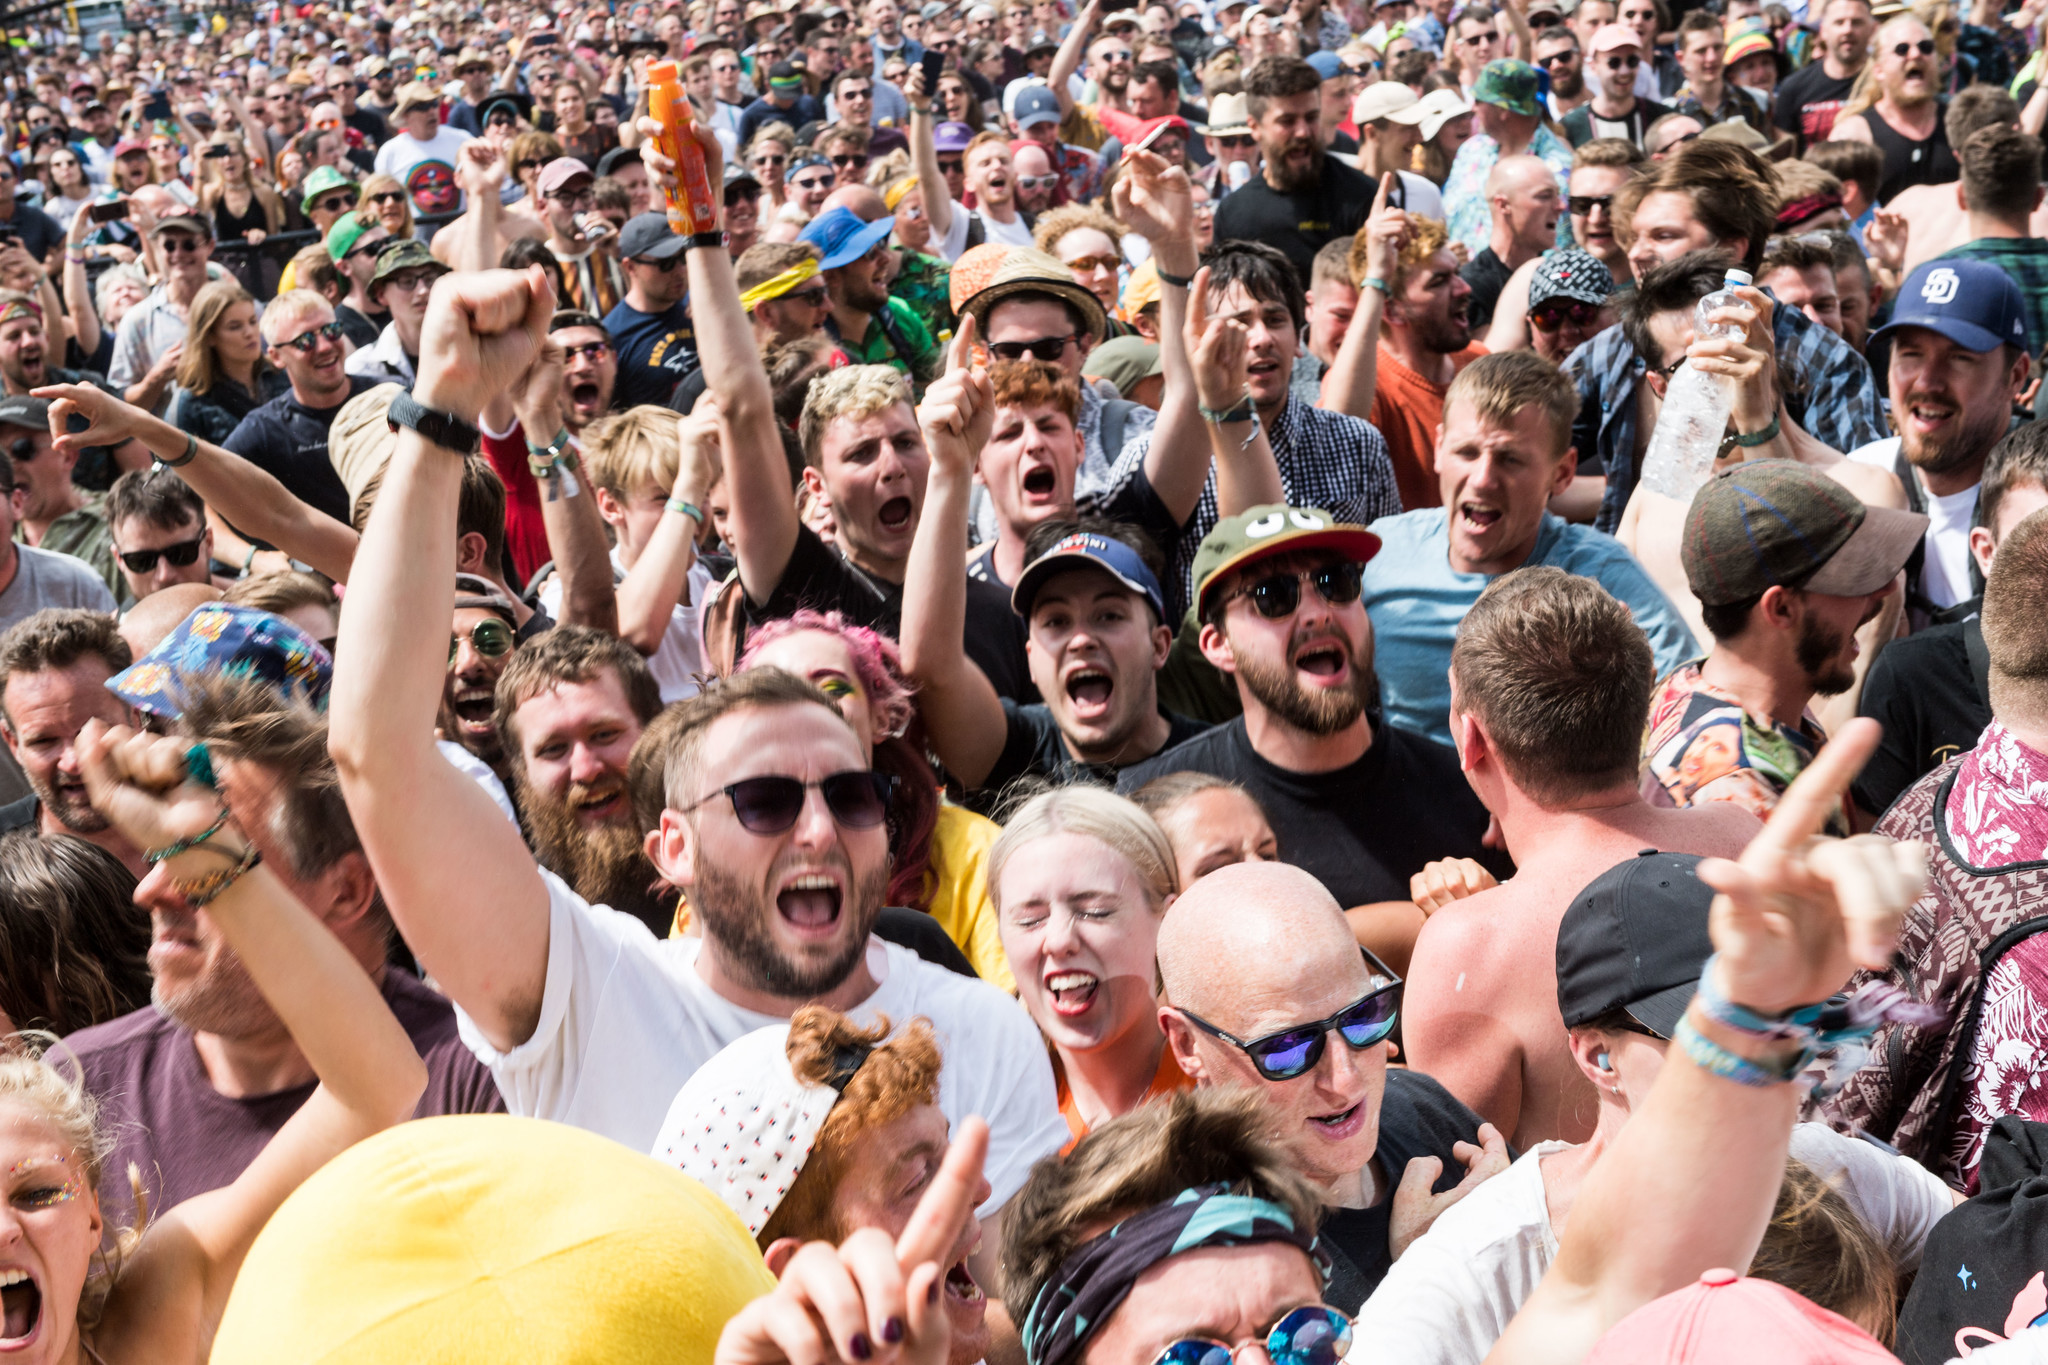 Glastonbury music festival, which planned to celebrate 50th anniversary, canceled due to coronavirus pandemic